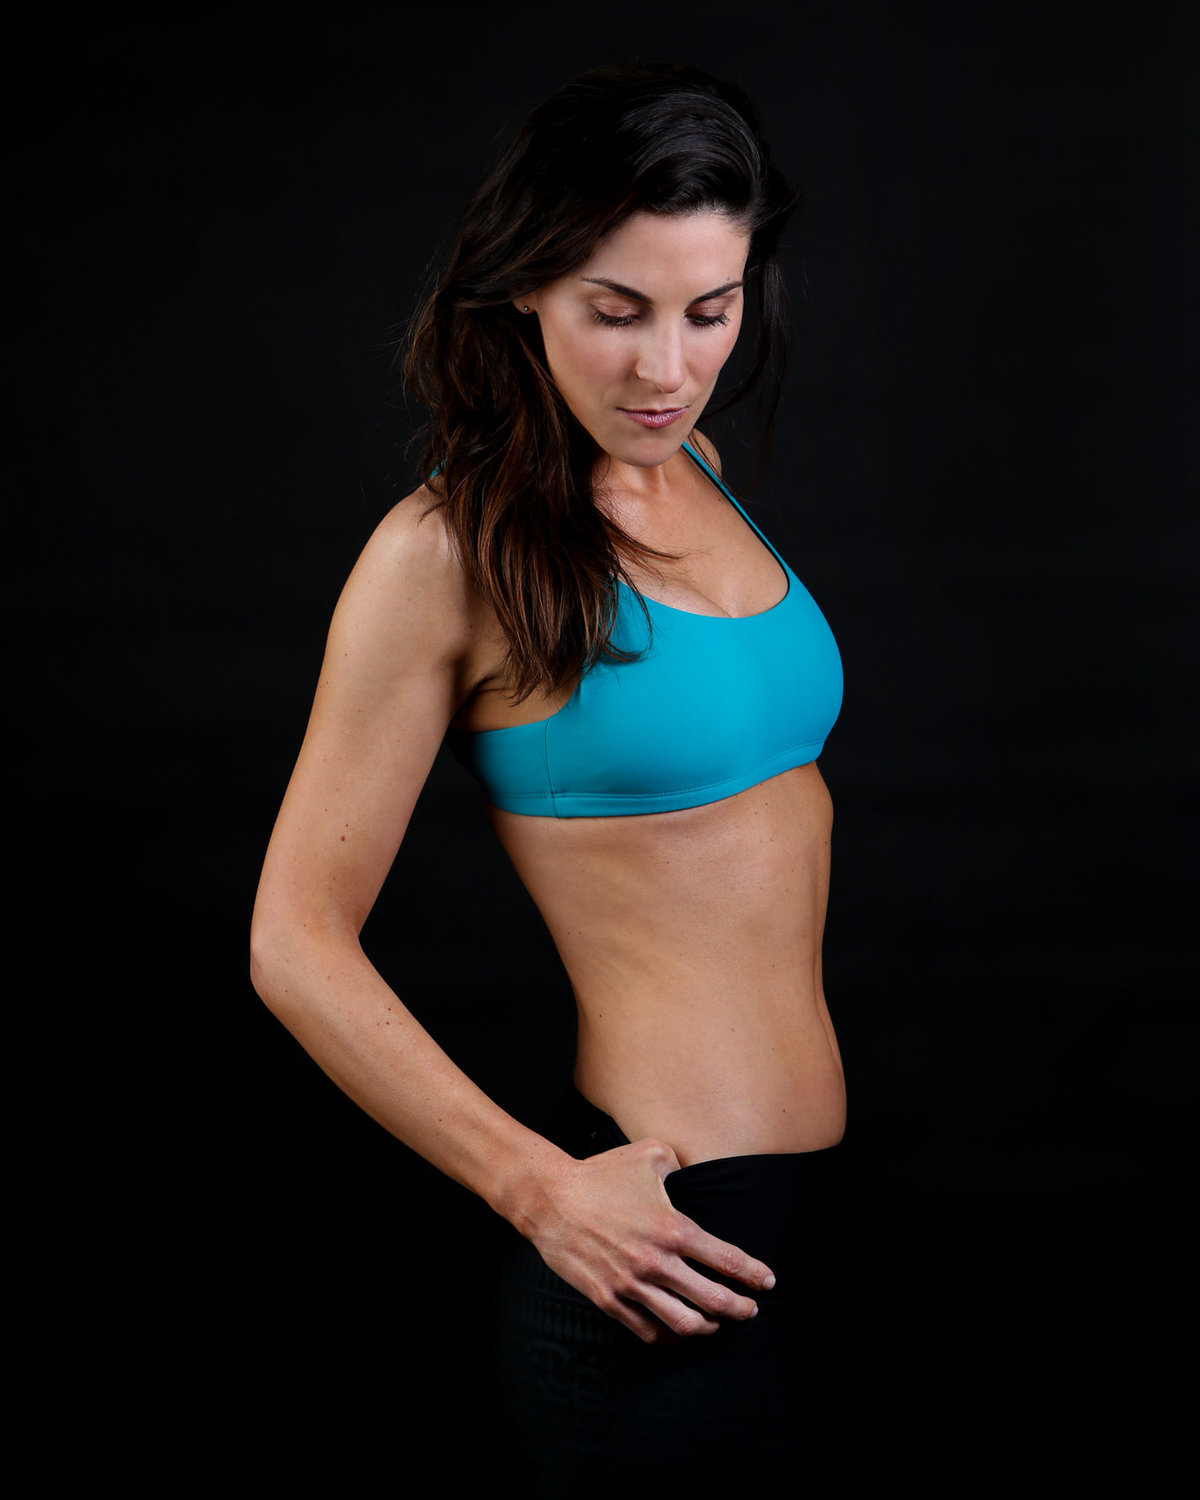 In-Studio with Black Backdrop Fitness Photos